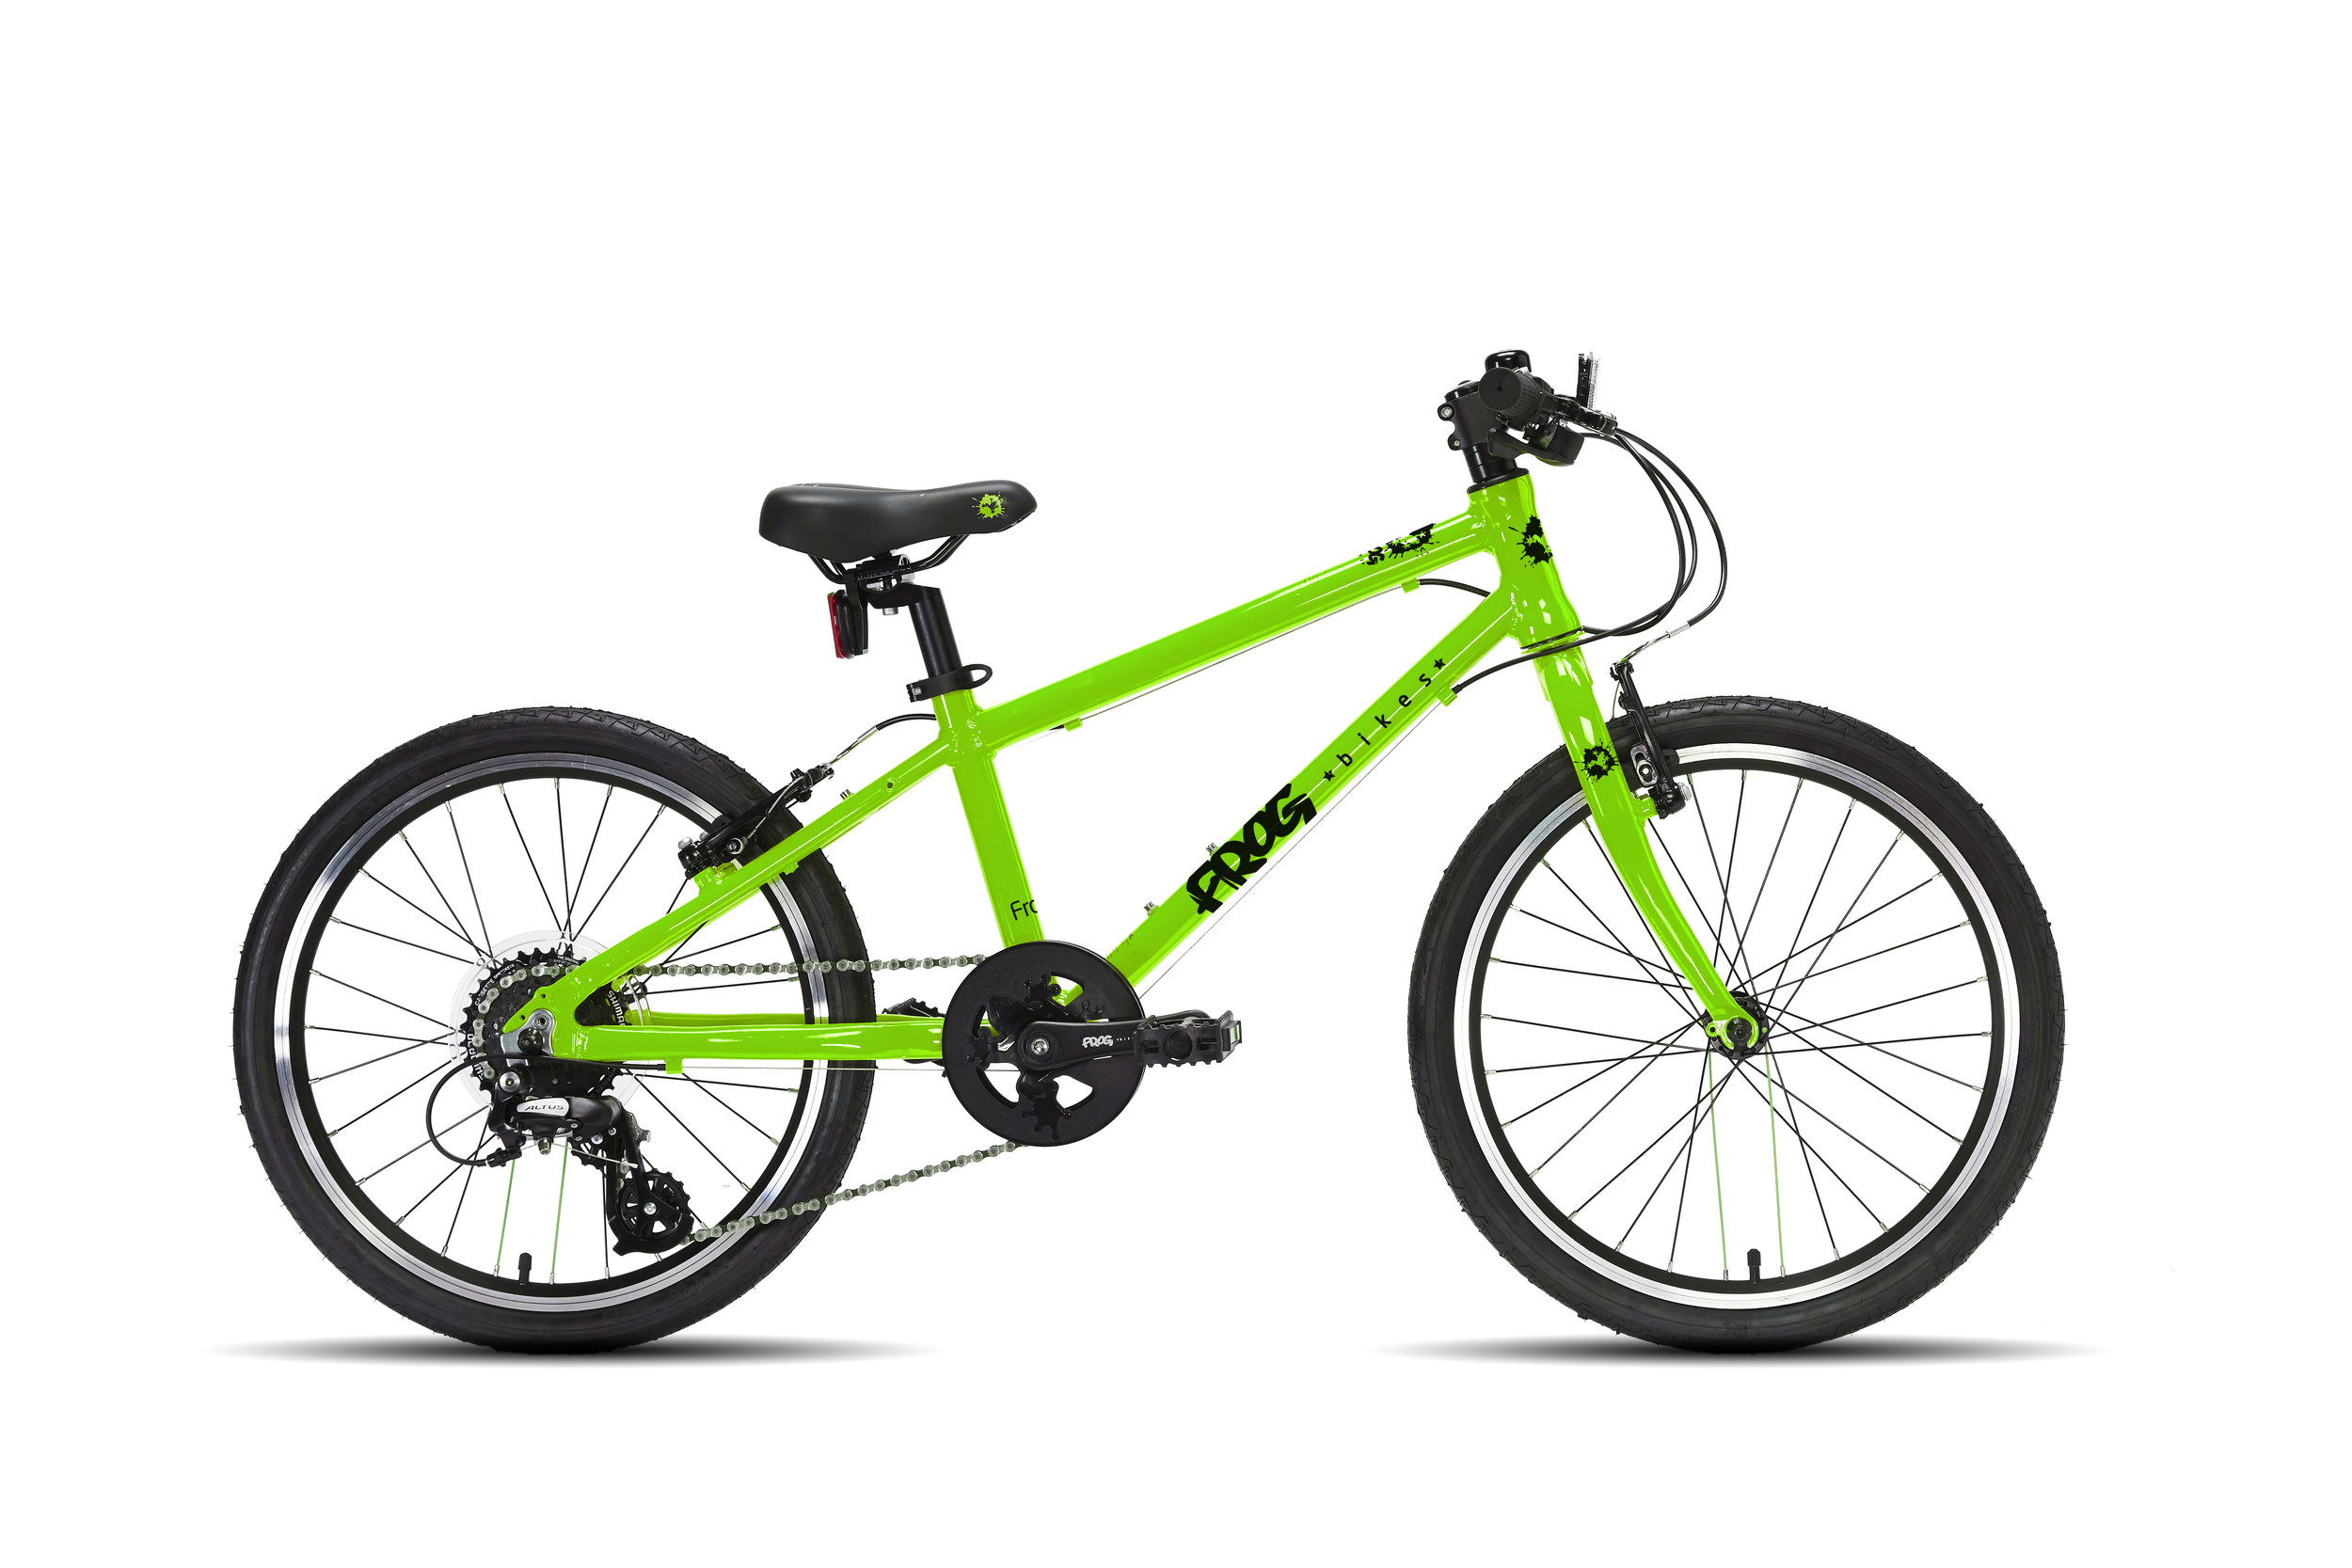 Frog 55 - This 20 inch kids' bike is a great geared bike for 6 or 7 year olds with a minimum inside leg of 55cm